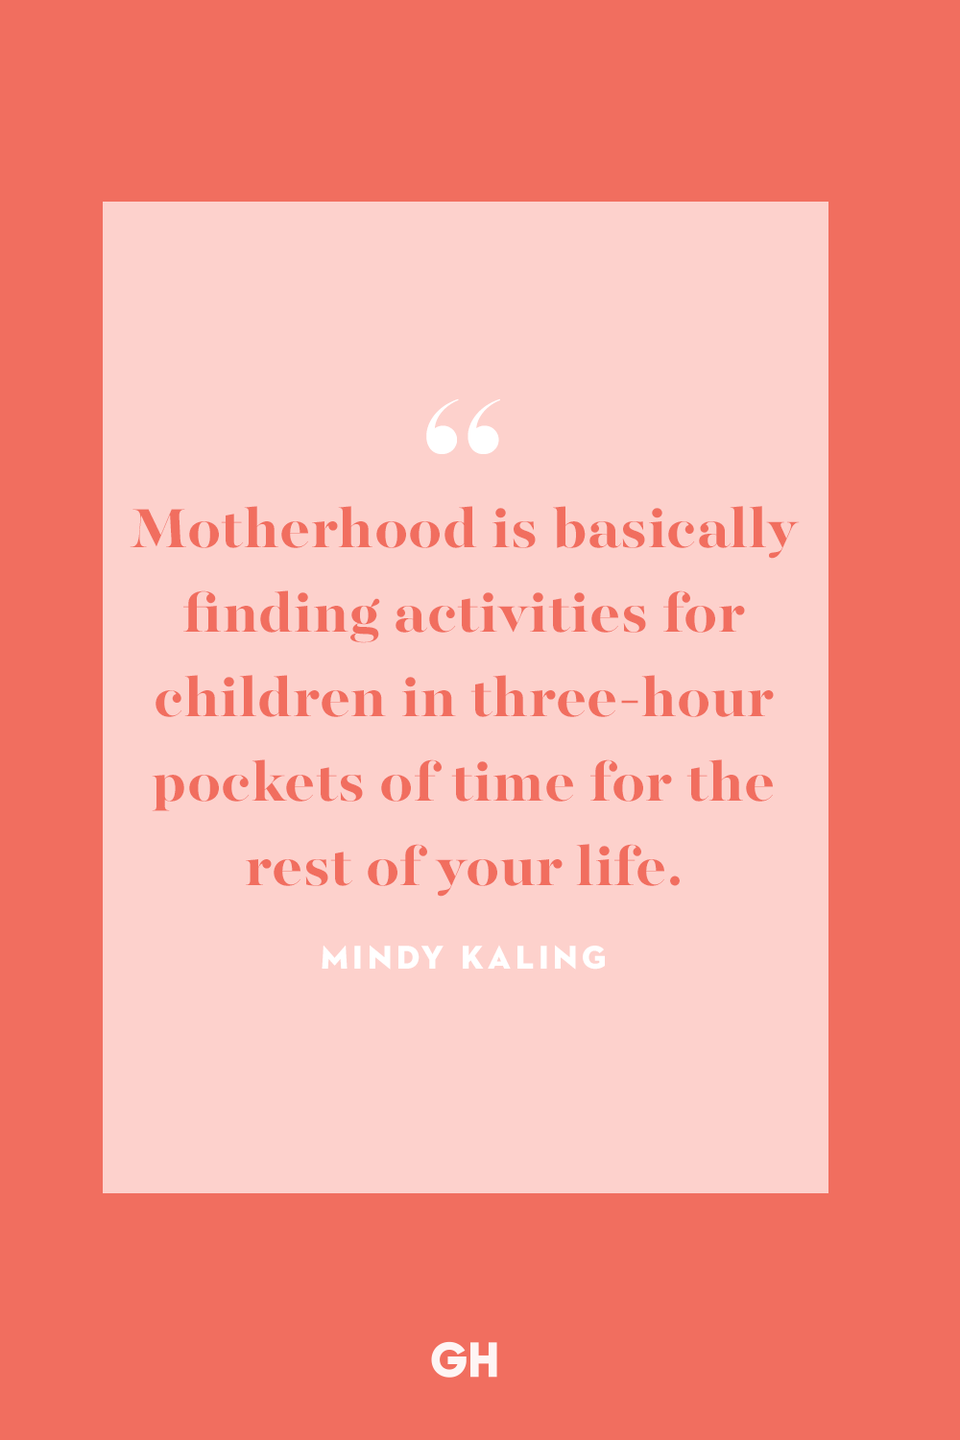 <p>Motherhood is basically finding activities for children in three-hour pockets of time for the rest of your life.</p>